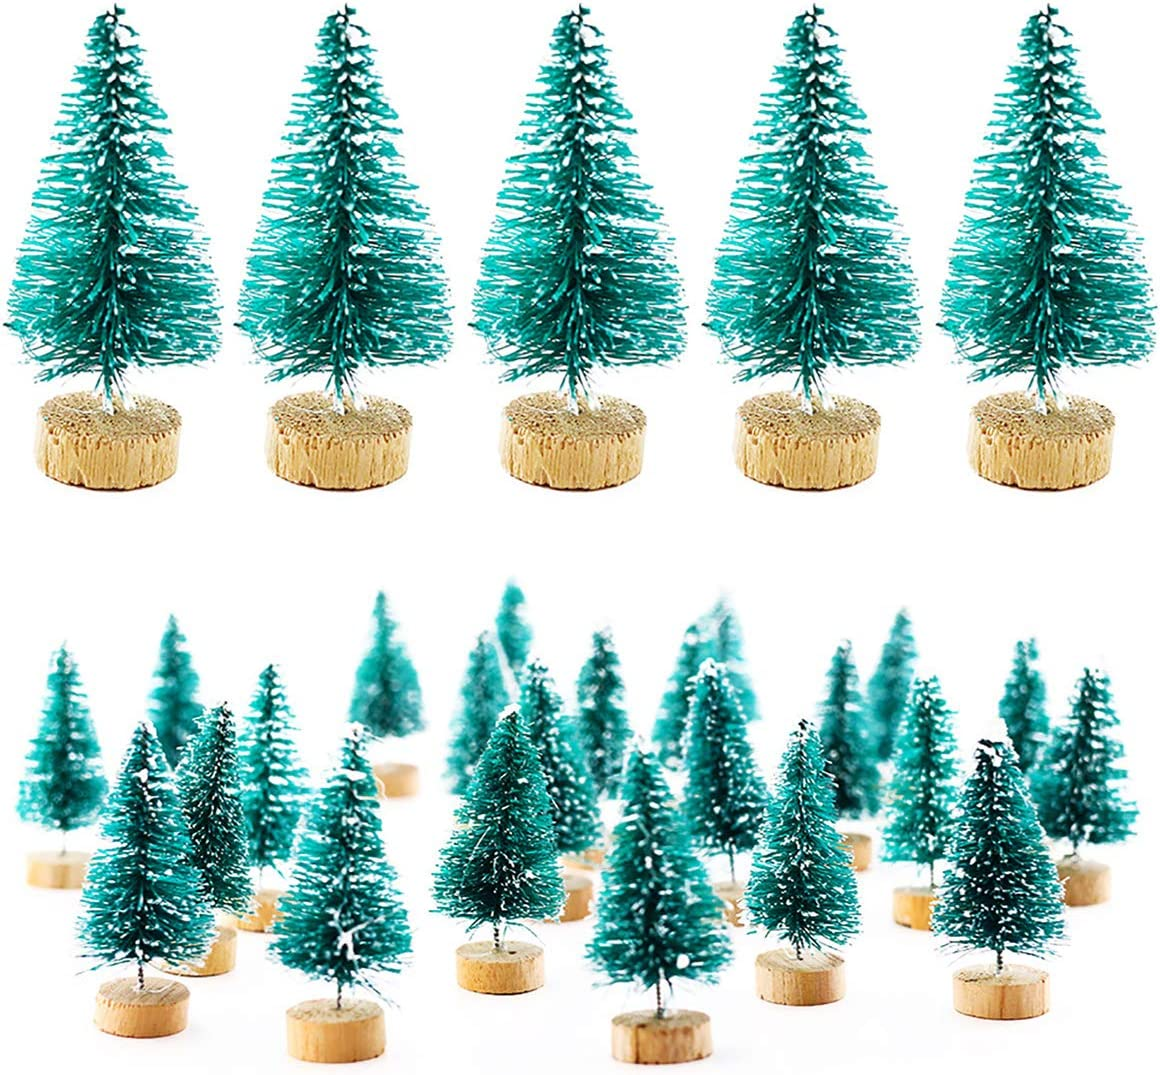 Etmact 24pcs Mini Pine Trees Frosted Sisal Trees with Wood Base Bottle Brush Trees Plastic Winter Snow Ornaments Tabletop Trees for Crafting, Displaying and Decoration (24 Pack)